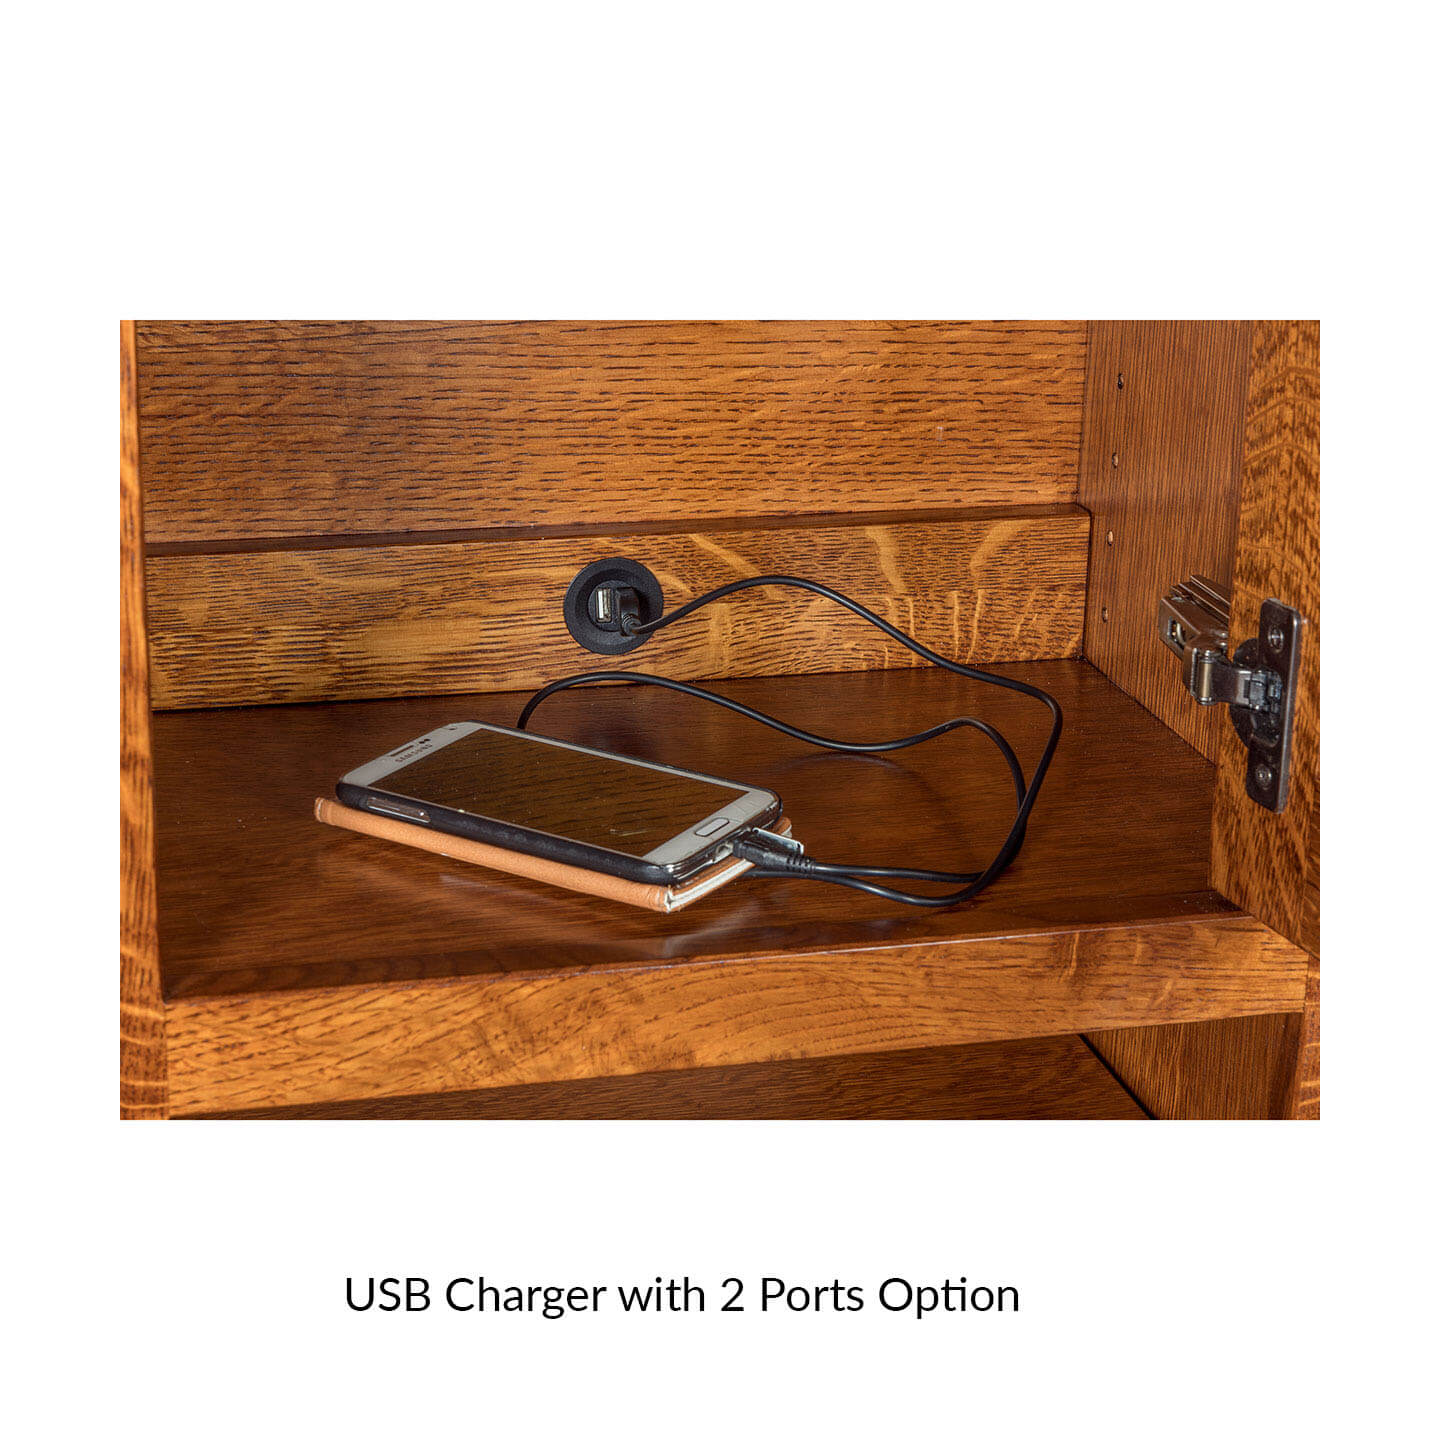 7.1-usb-charger-with-2-ports-option.jpg